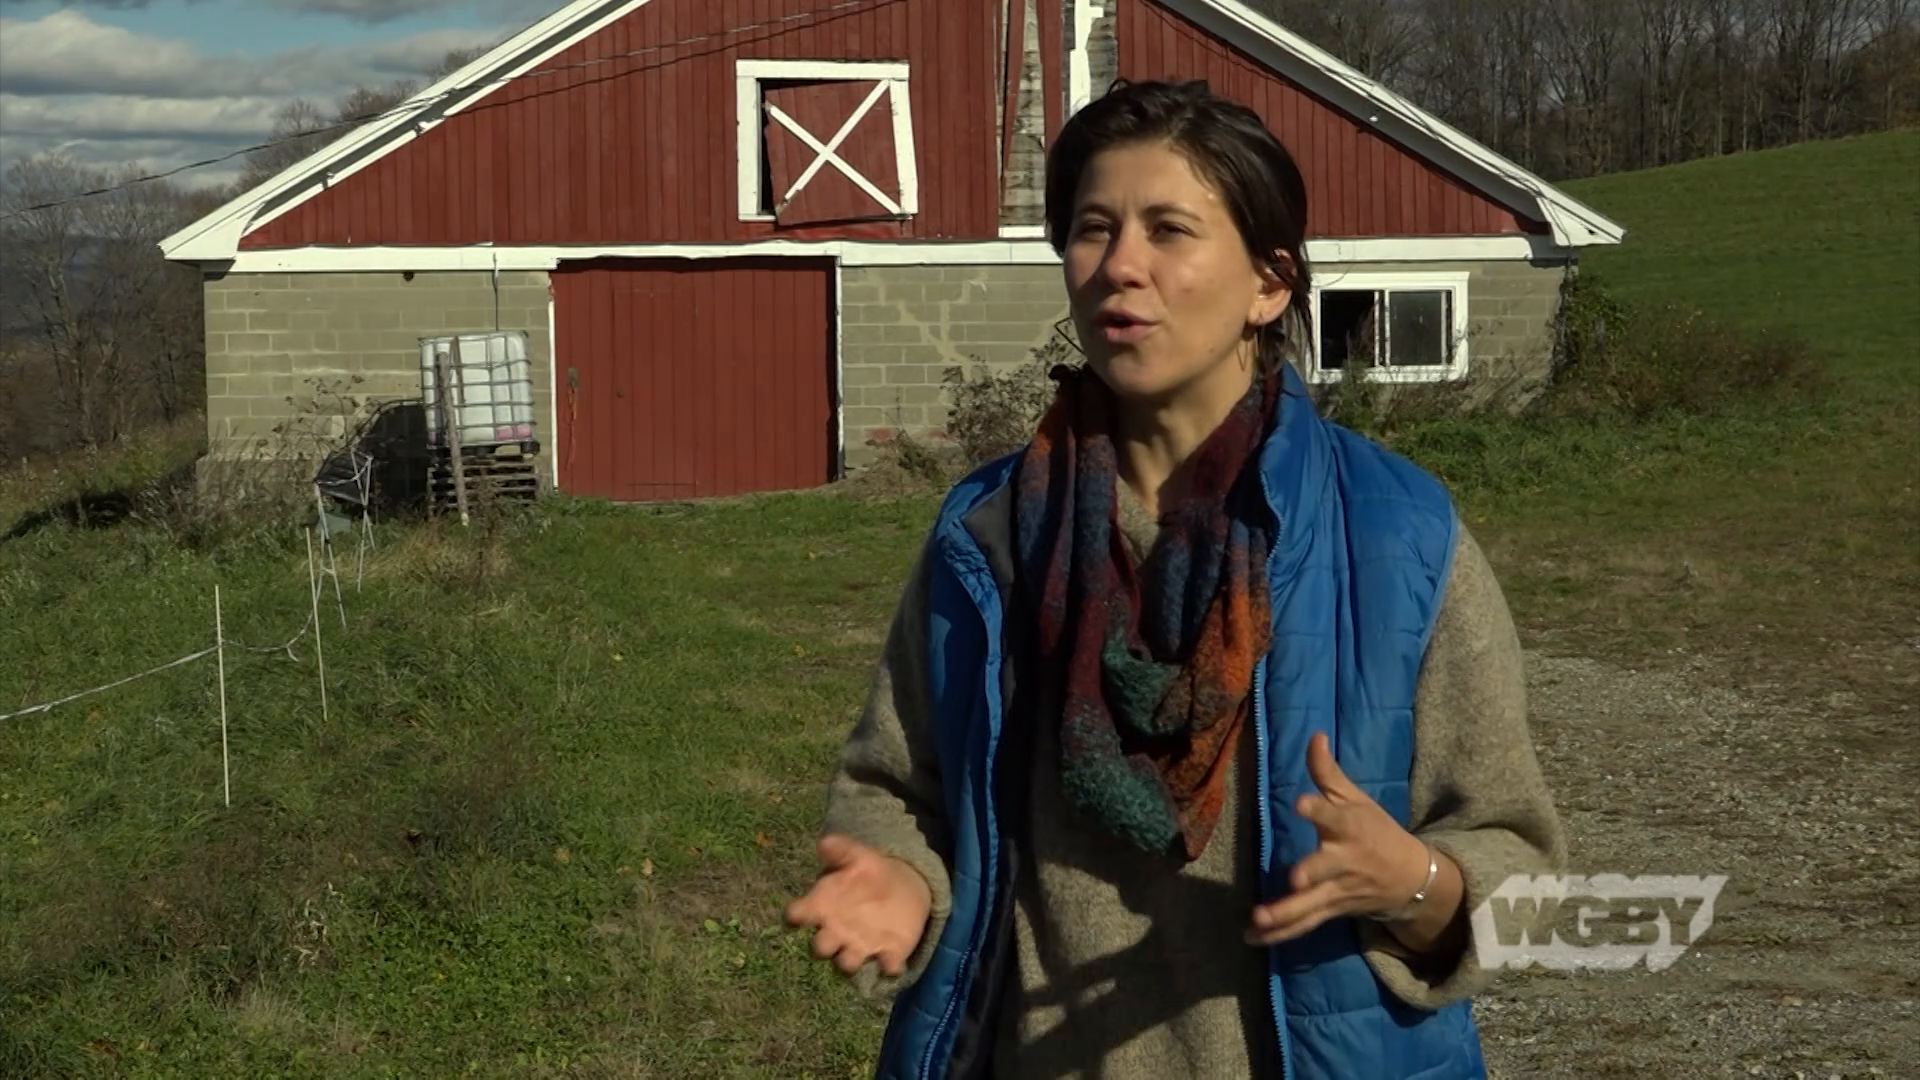 A part of CISA's Field Notes program, young farmer Meg Bantle shares her experience returning Adams, MA to help continue the legacy of the family farm.